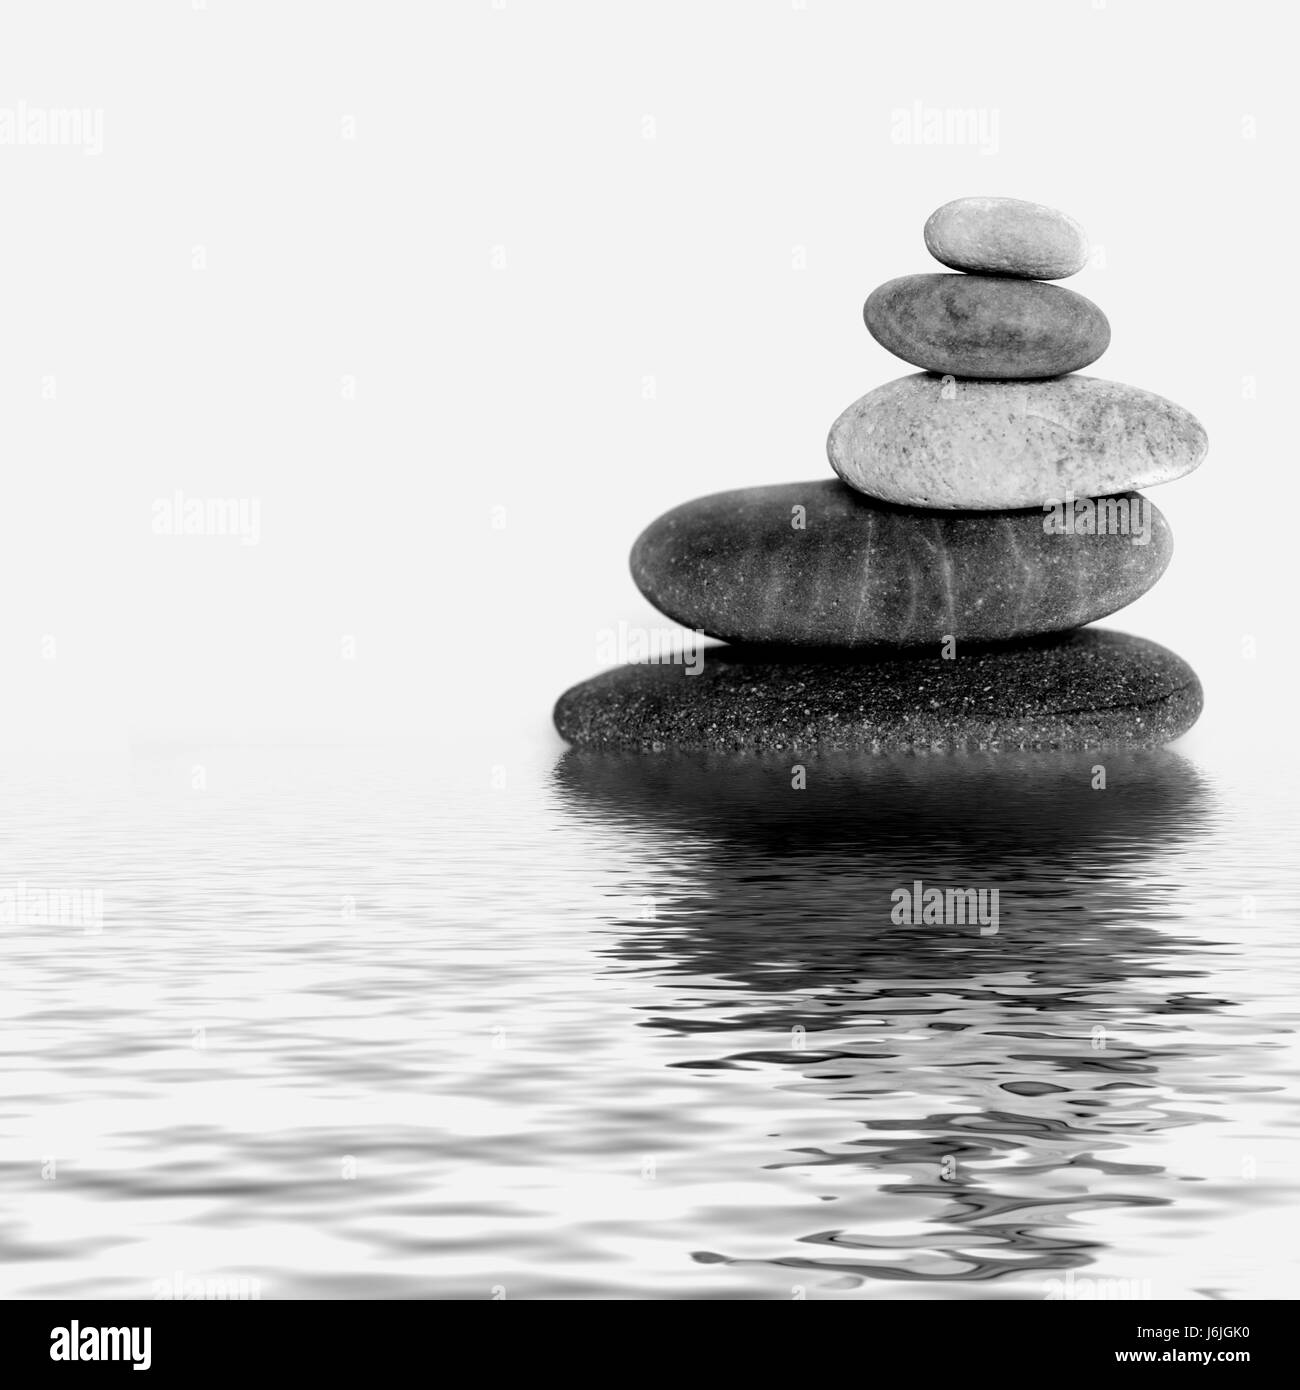 stone tower in water - Stock Image